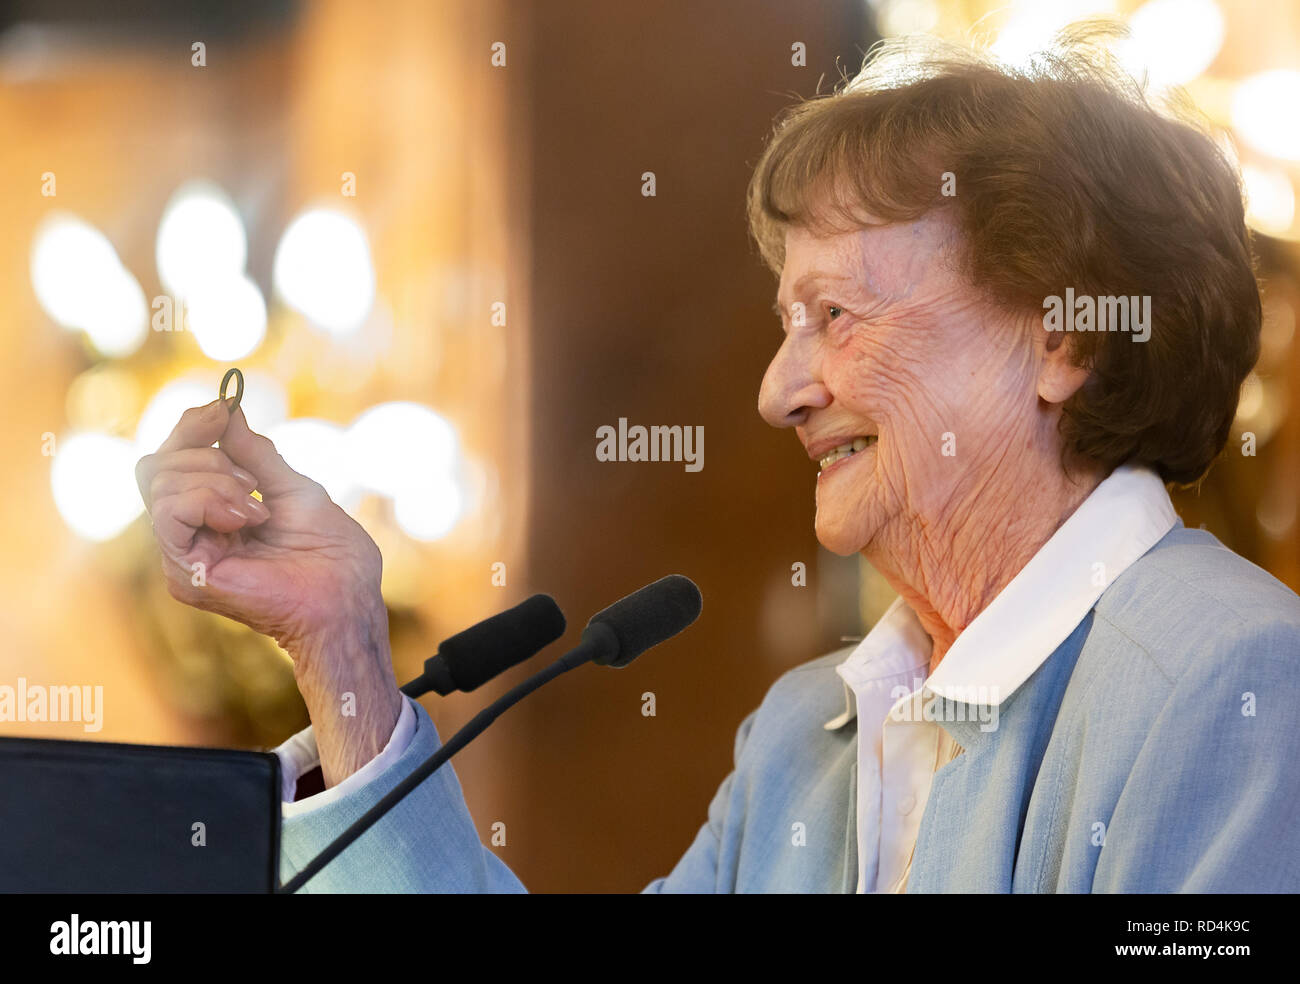 Hamburg, Germany. 17th Jan, 2019. The survivor of the concentration camps Auschwitz and Neuengamme, Edith Kraus, shows 'A City and its Concentration Camp. prisoners of the Neuengamme concentration camp in everyday Hamburg wartime 1943-1945' a ring that they had secretly received from a German during their forced labor time in Hamburg. At least 42,900 people died in Neuengamme concentration camp and its satellite camps. Credit: Ulrich Perrey/dpa/Alamy Live News - Stock Image